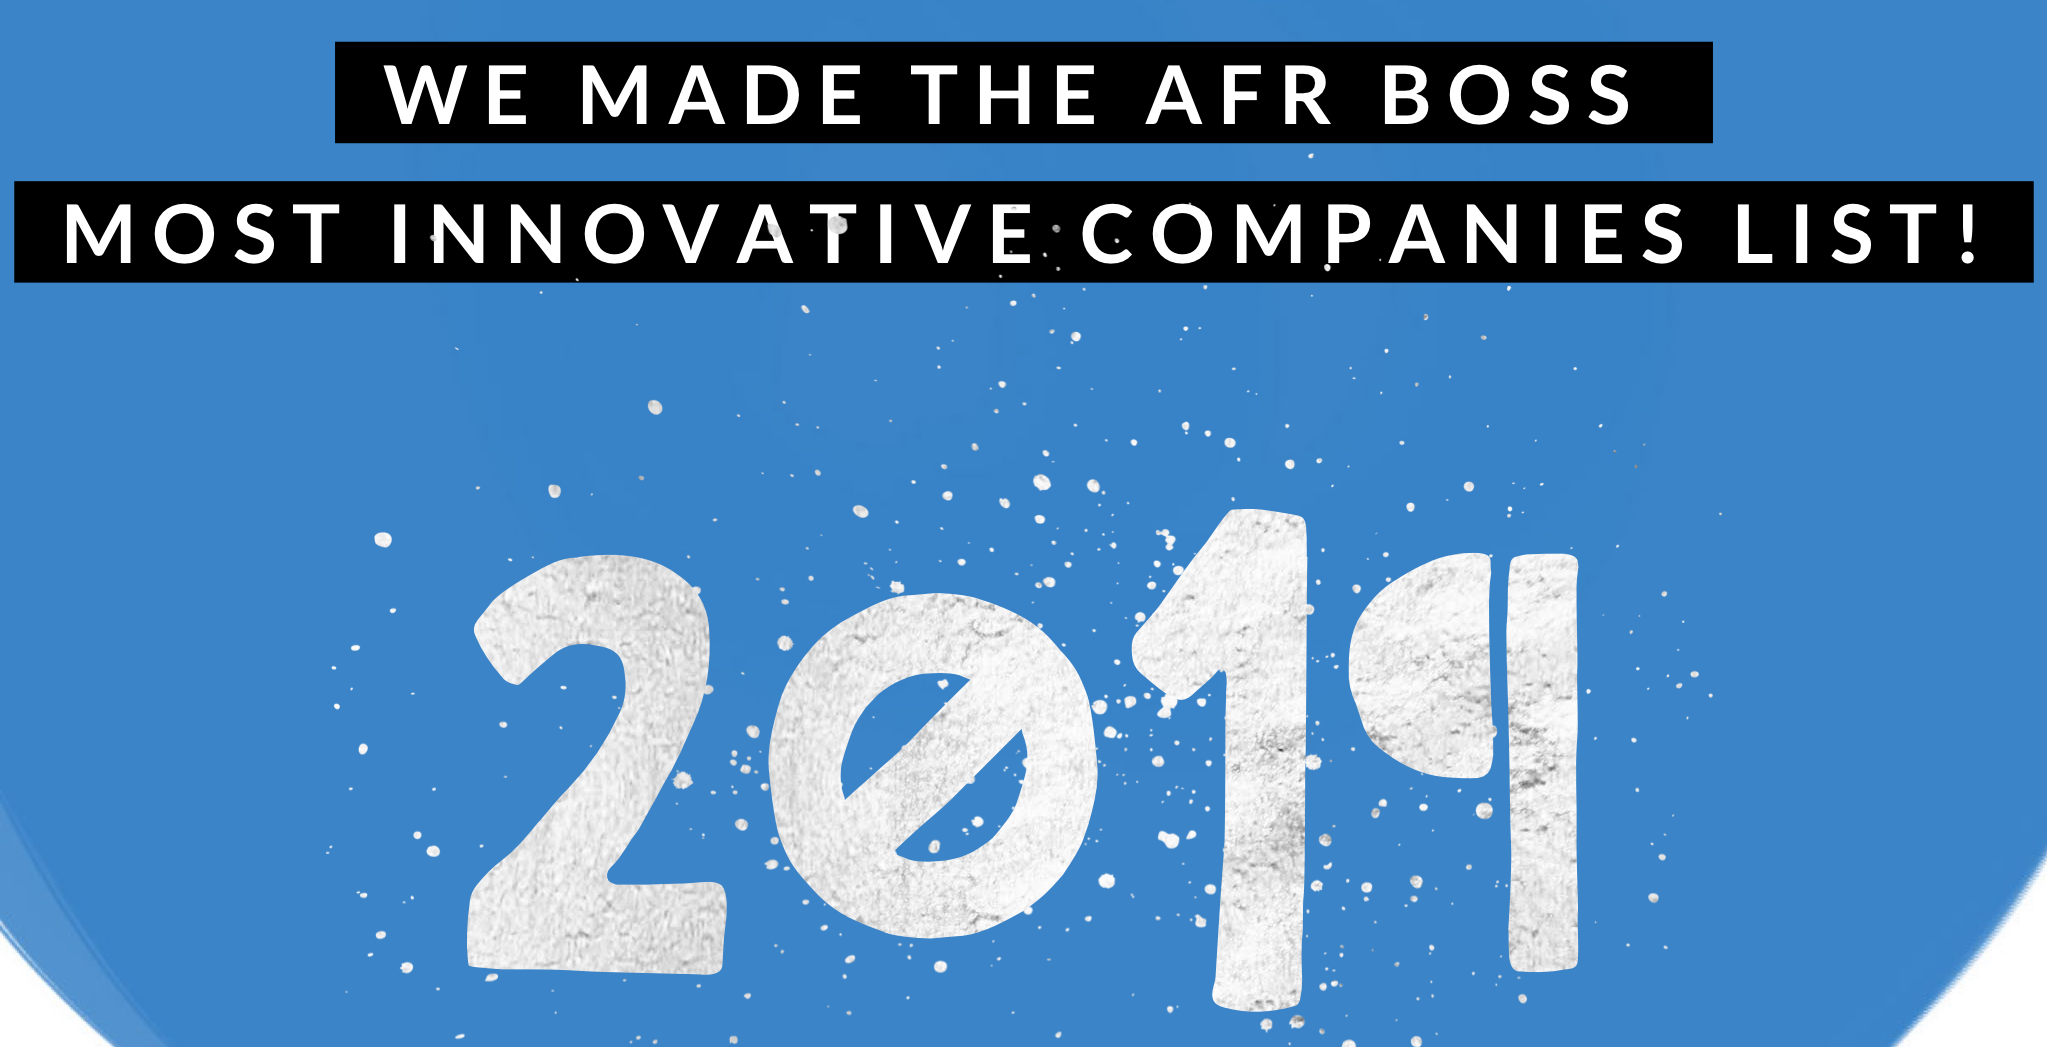 ORIX Australia has been named on the 2019 AFR BOSS Most Innovative Companies List for the third consecutive year and was awarded Best Innovation in the Property, Construction & Transport Industry category.